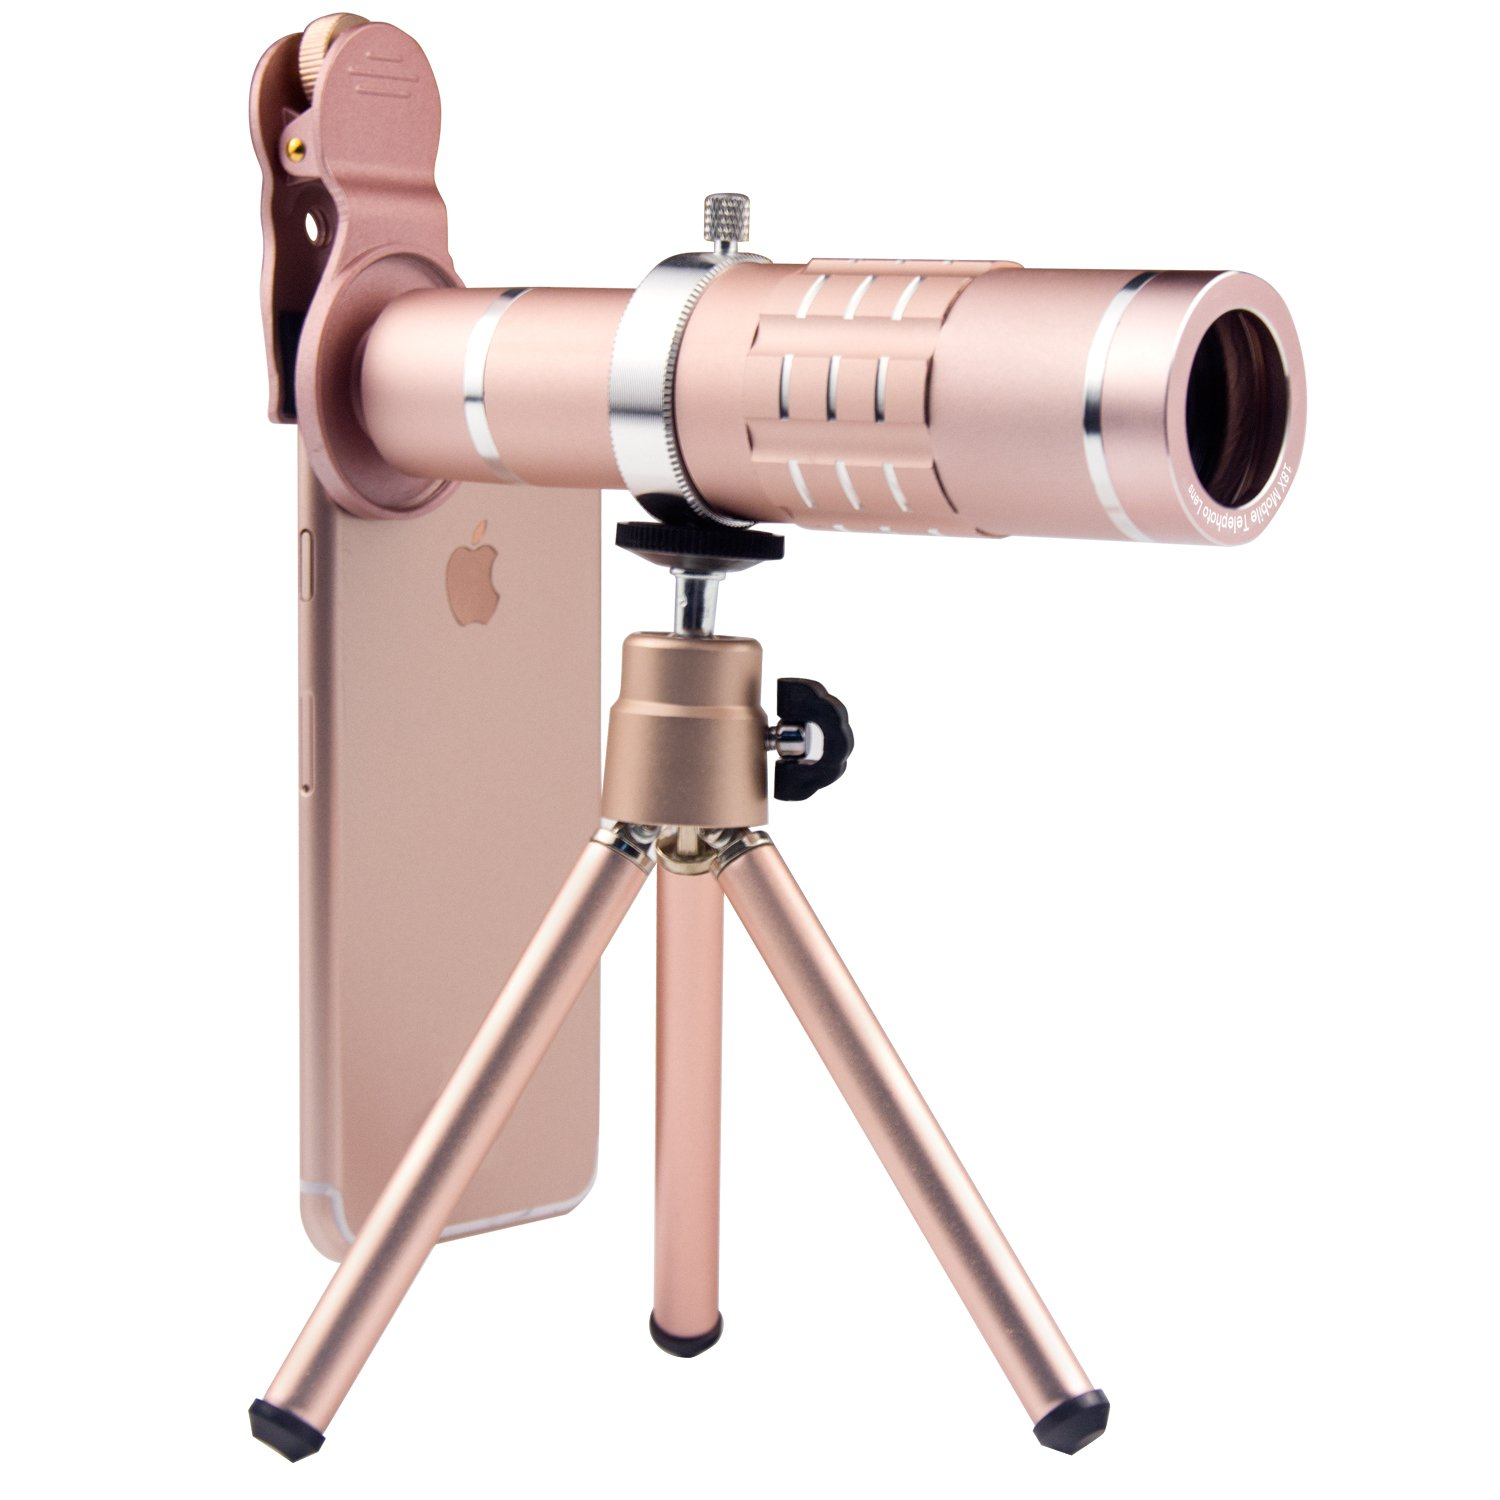 Finny Cell Phone Lens 18X Optical Telephoto Lens Kit with Flexible Tripod and Clip for iPhone Samsung Most Smartphones (Rose Gold)